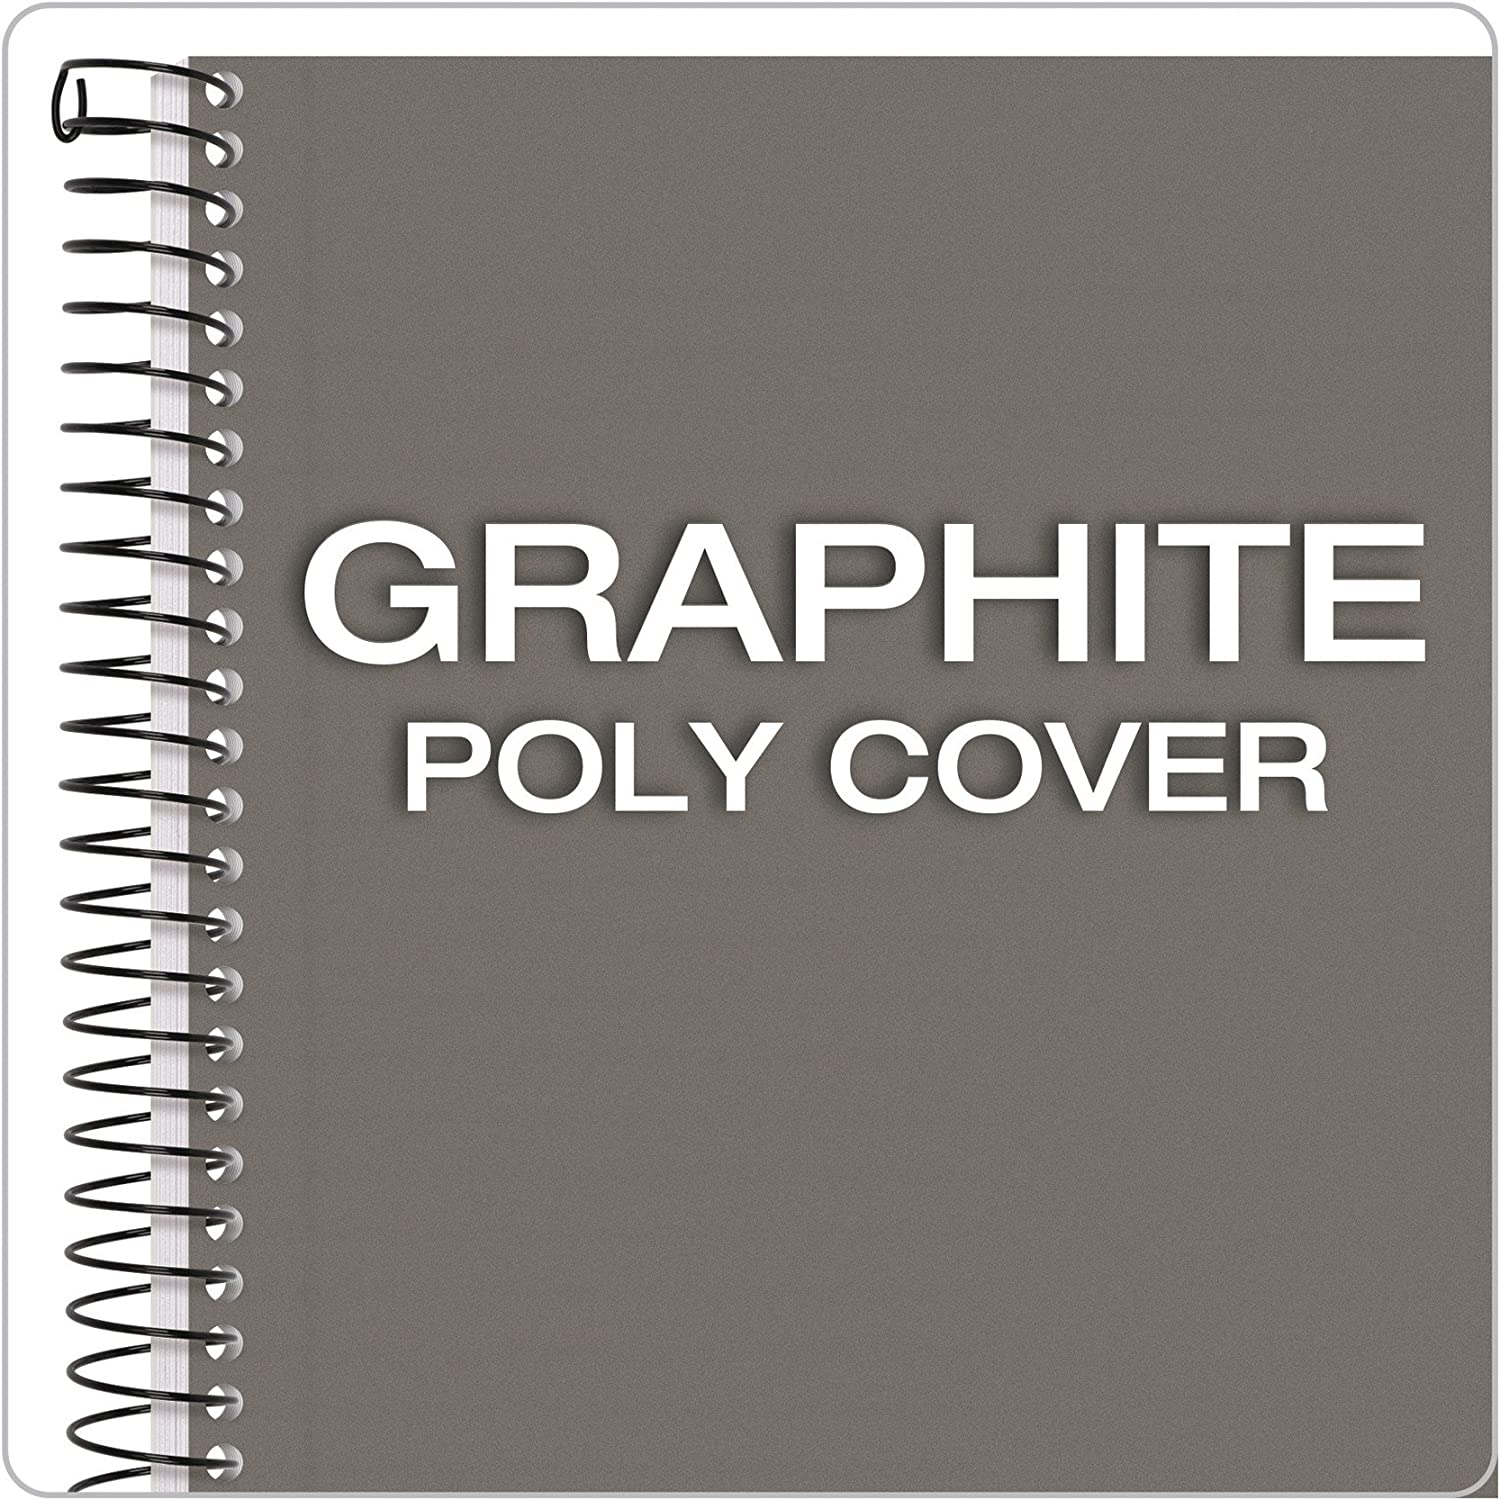 73507 100 Sheets per Book Graphite Plastic Cover College Rule TOPS Classified Business Notebook 5.5 x 8.5-Inch